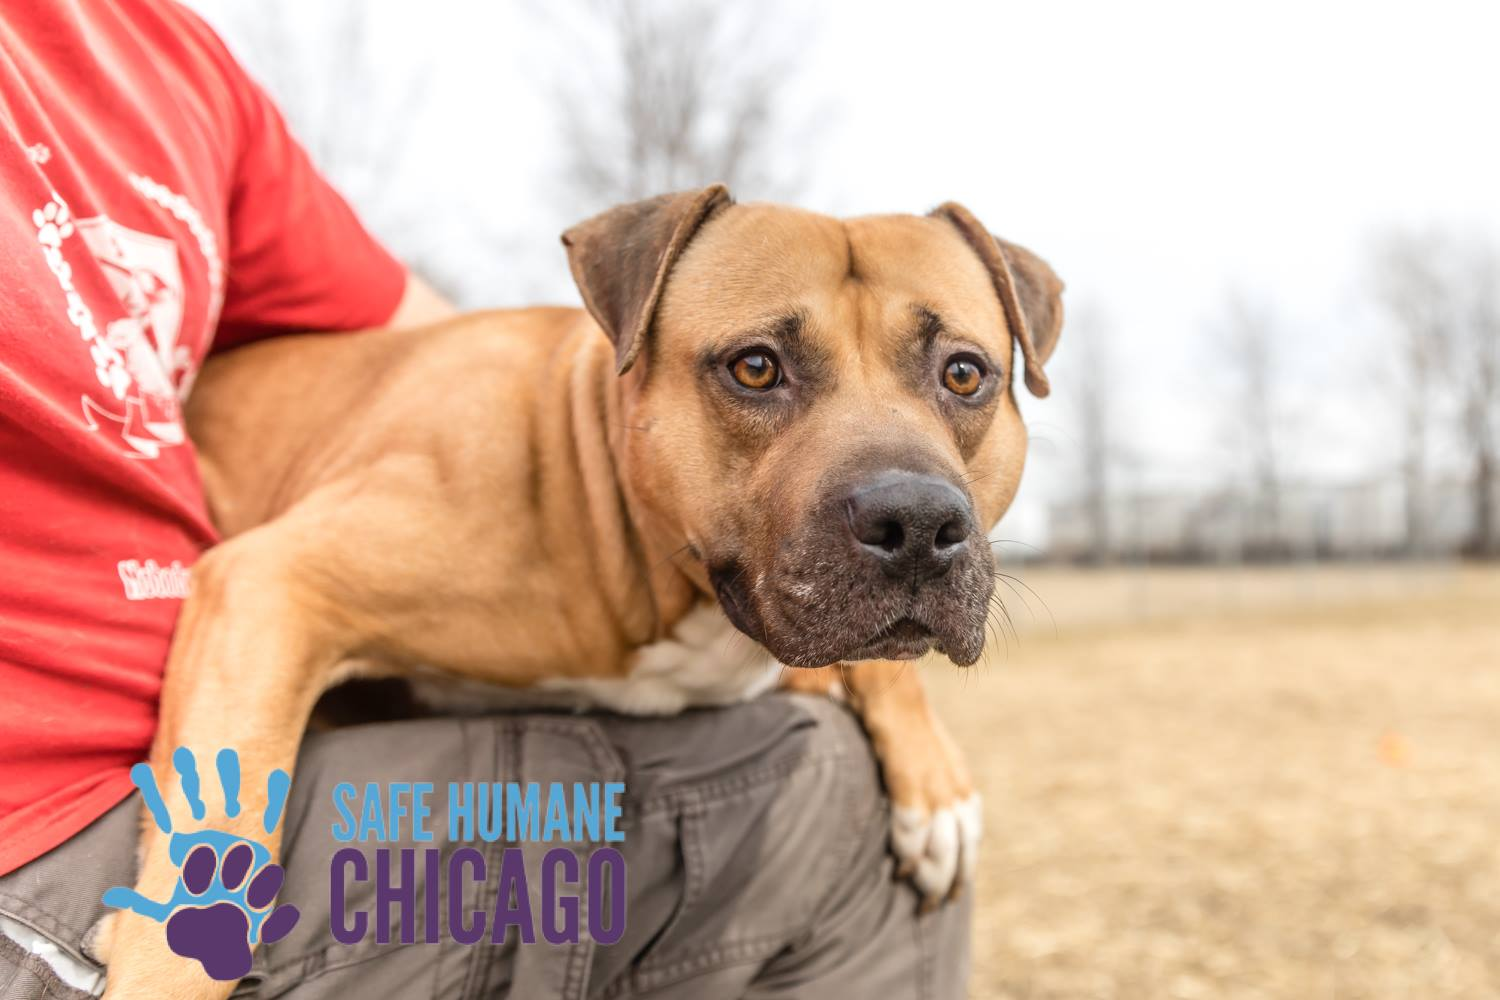 Honey Pot, Safe Humane Chicago Court Case Dog is lap dog